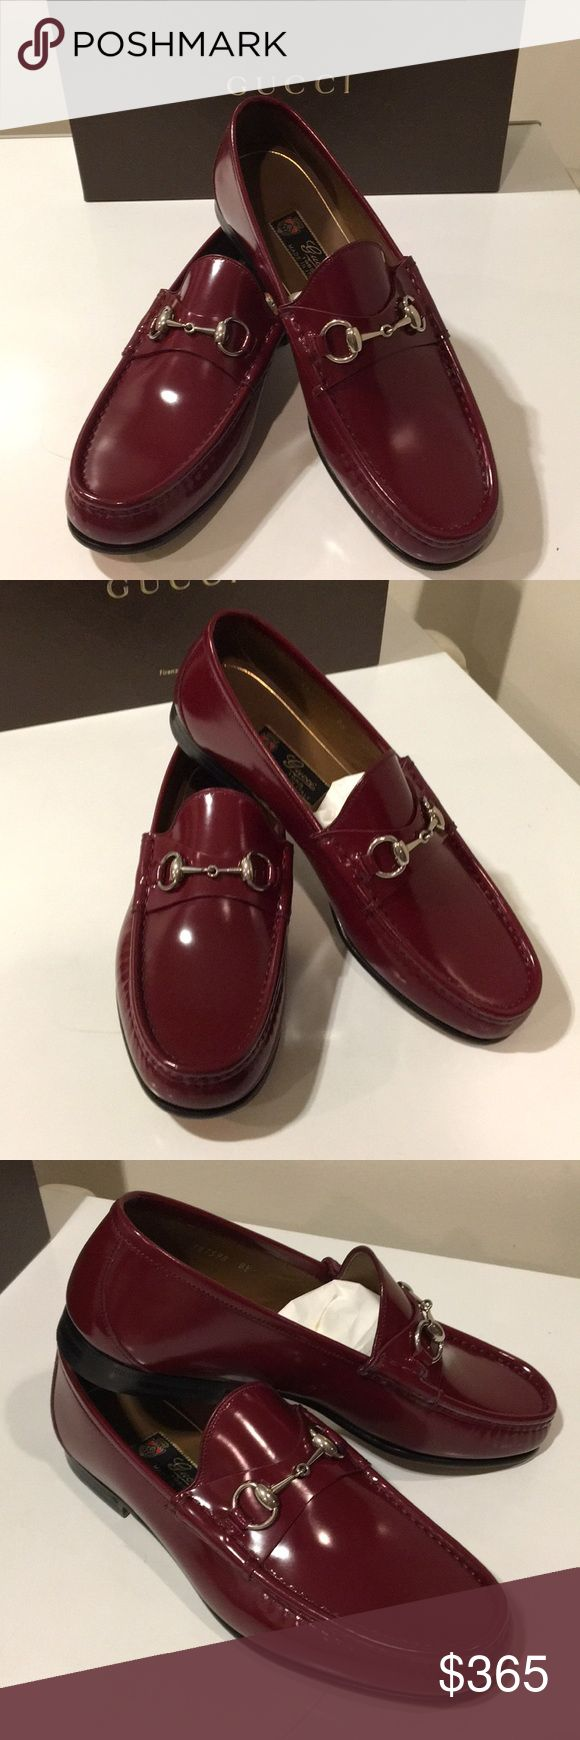 New Gucci Shady Lux Red Horsebit leather shoes🇮🇹 Brand New Gucci Shady Lux Horsebit loafer shoes🇮🇹 Color Strong red  Various sizes - Gucci shoes is stamp with Gucci size and the US size is a size bigger U.K. 8.5 is US Sz 9.5  You are looking at the Gucci classic 1953 label leather shoes. Shinny upper leather   It has the Horsebit buckle that just give it the classiness of the shoes  Comes with Gucci original box and Gucci dust bag  Very elegant has a leather insole and outsole  Made in…